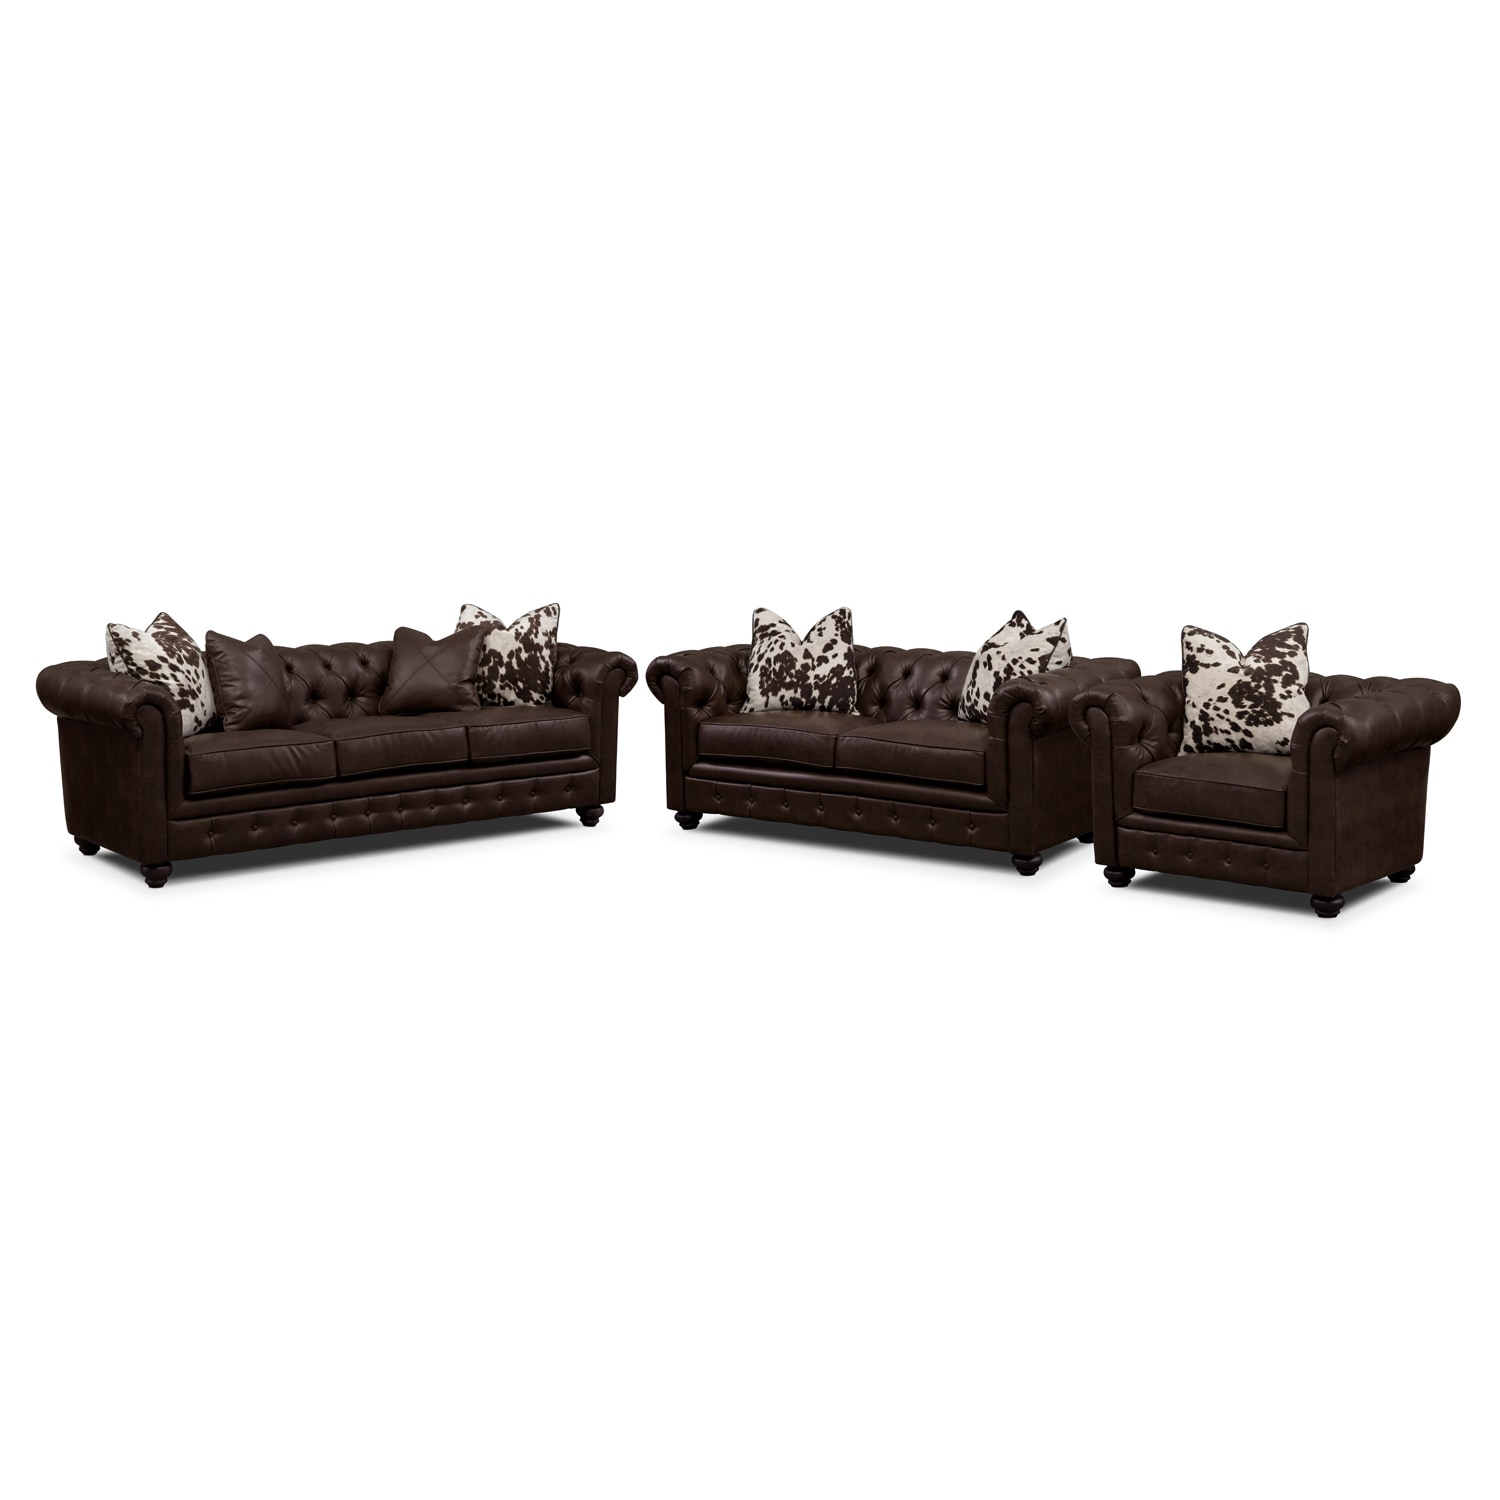 Living Room Furniture - Madeline Chocolate 3 Pc. Living Room Set